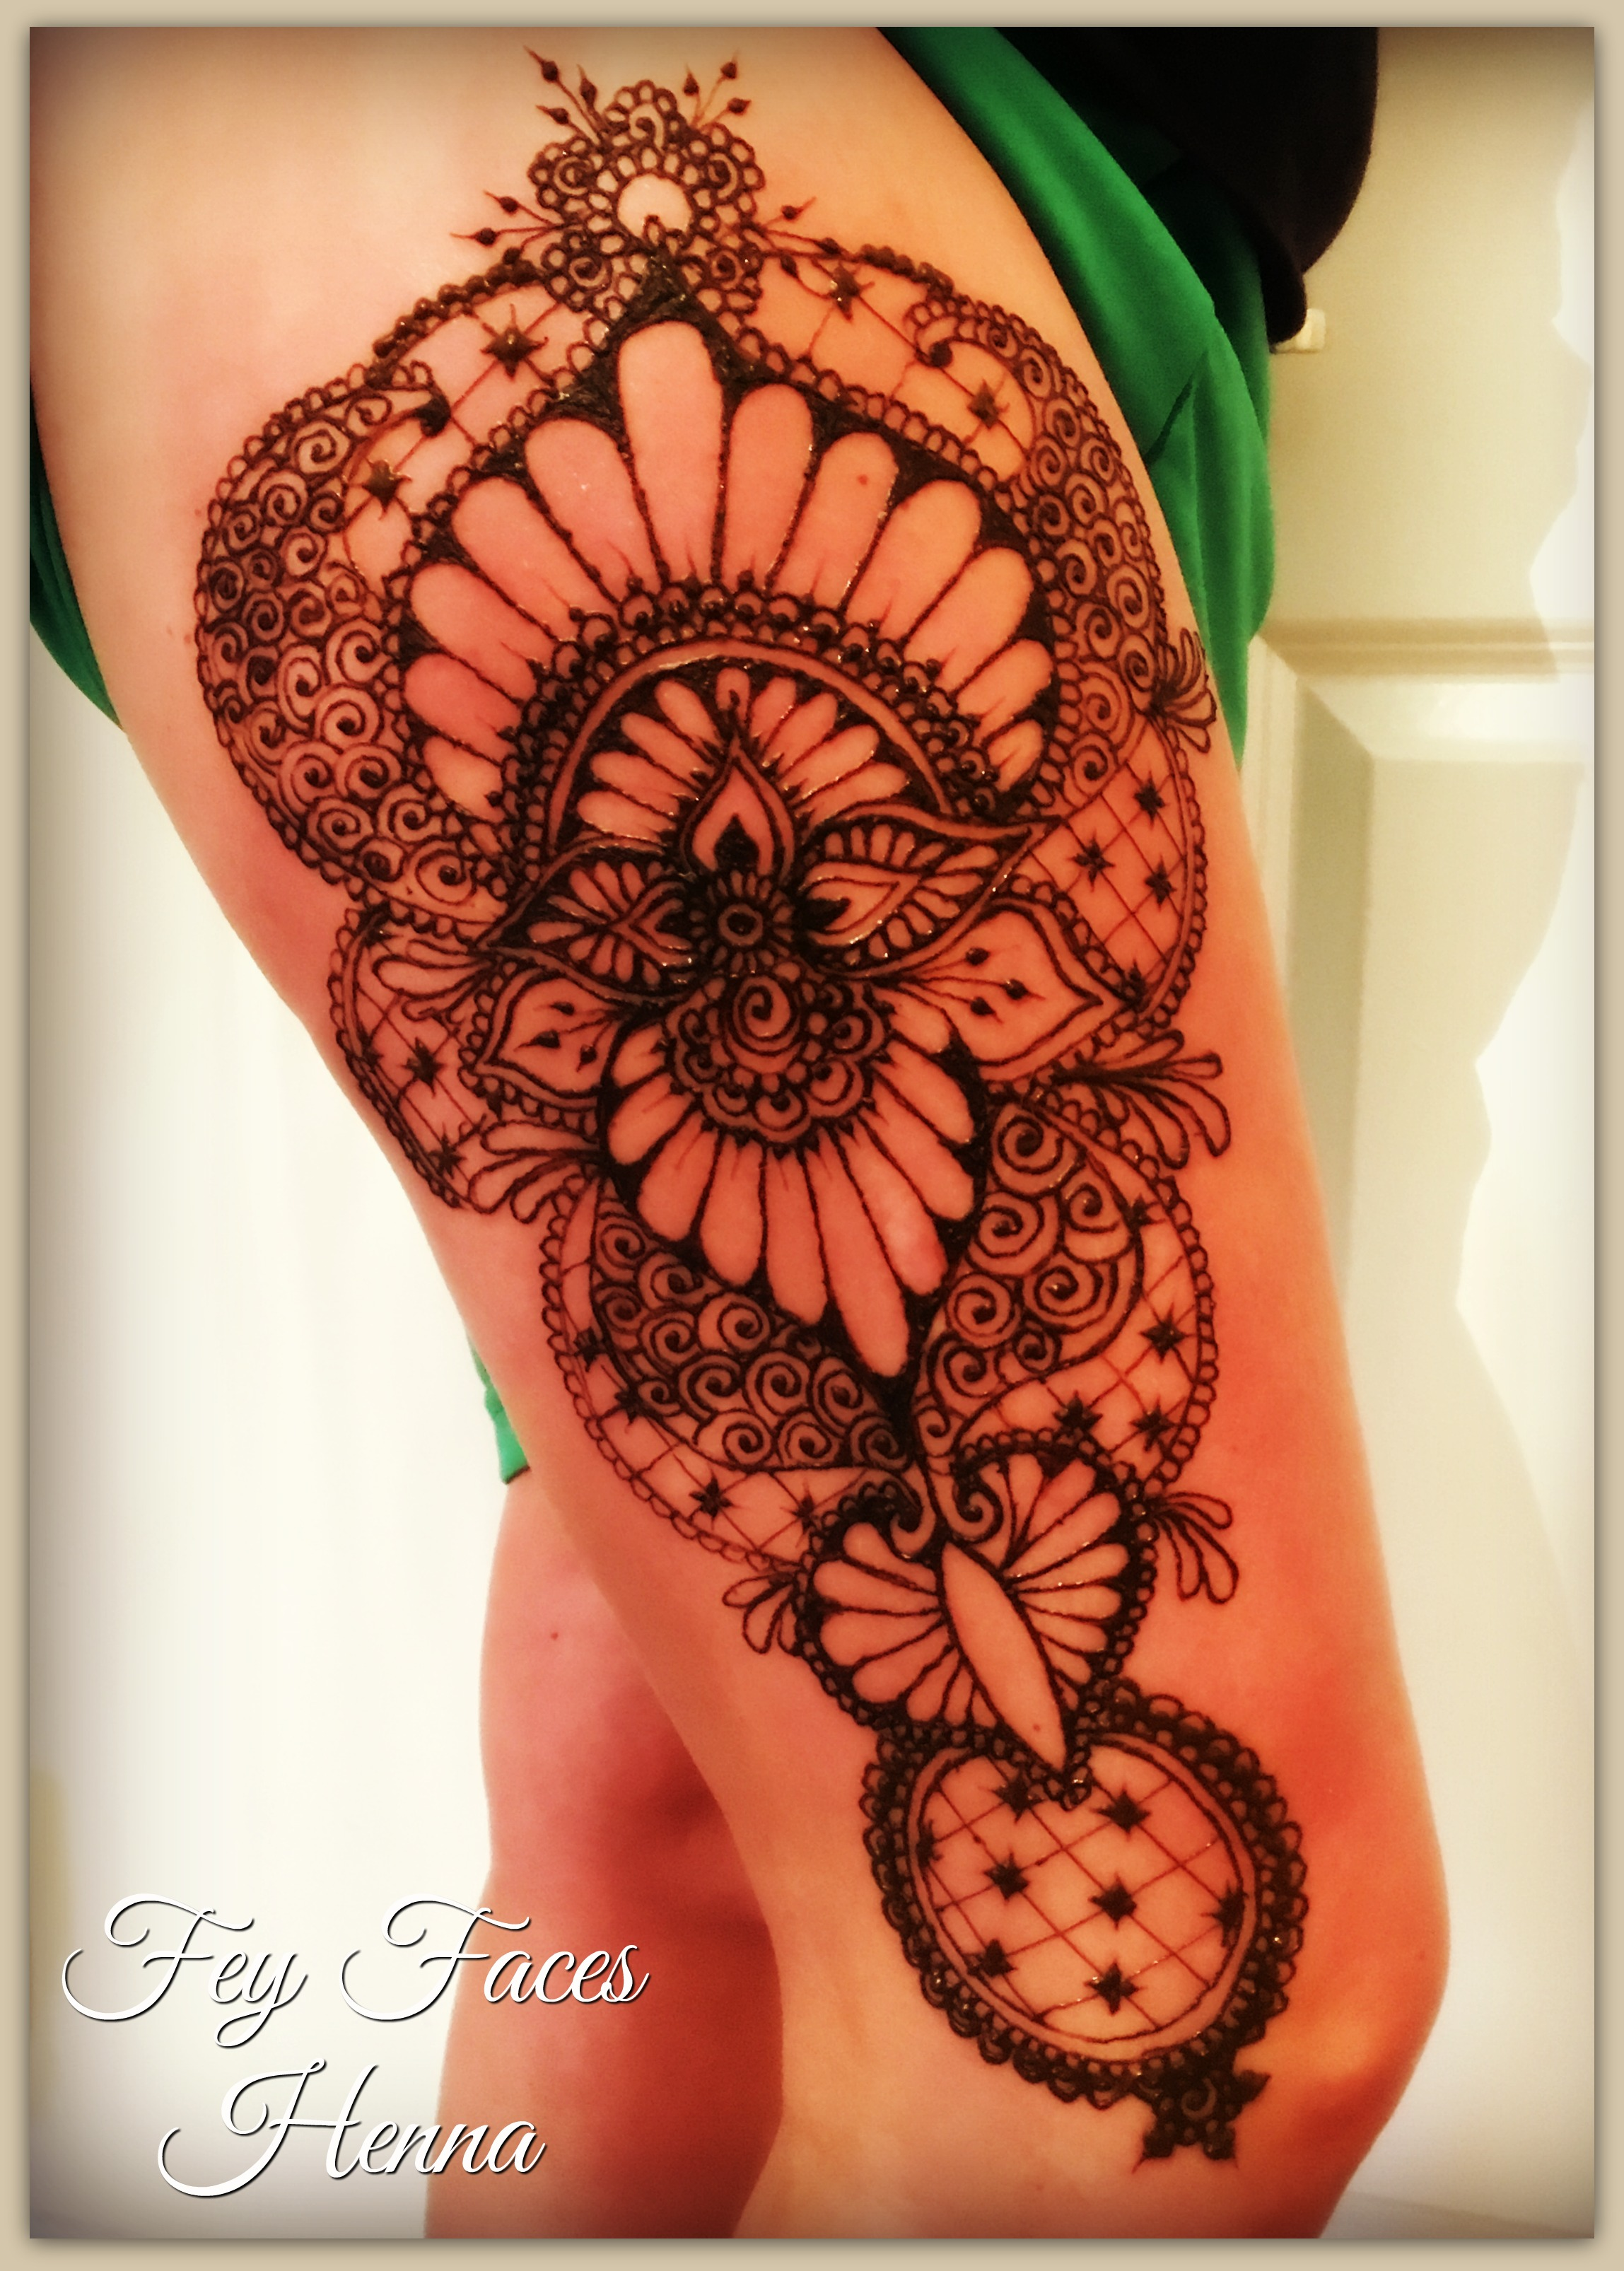 Fey Faces Henna Oxfordshire